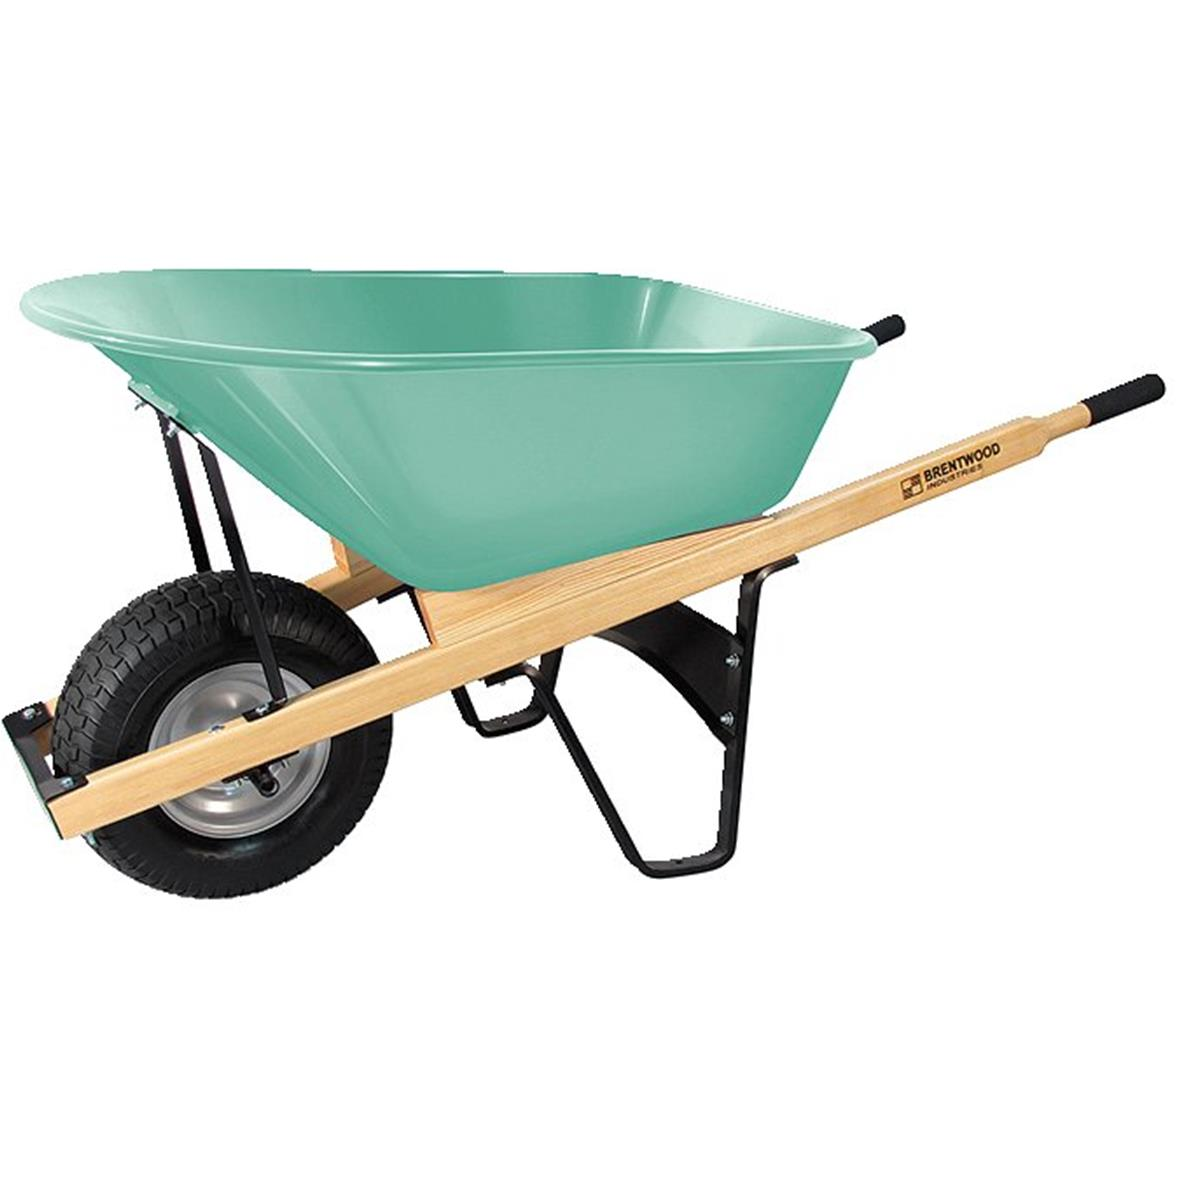 Brentwood Industries Steel Tray Wheelbarrow, Pneumatic Wheel, 6 cu ft